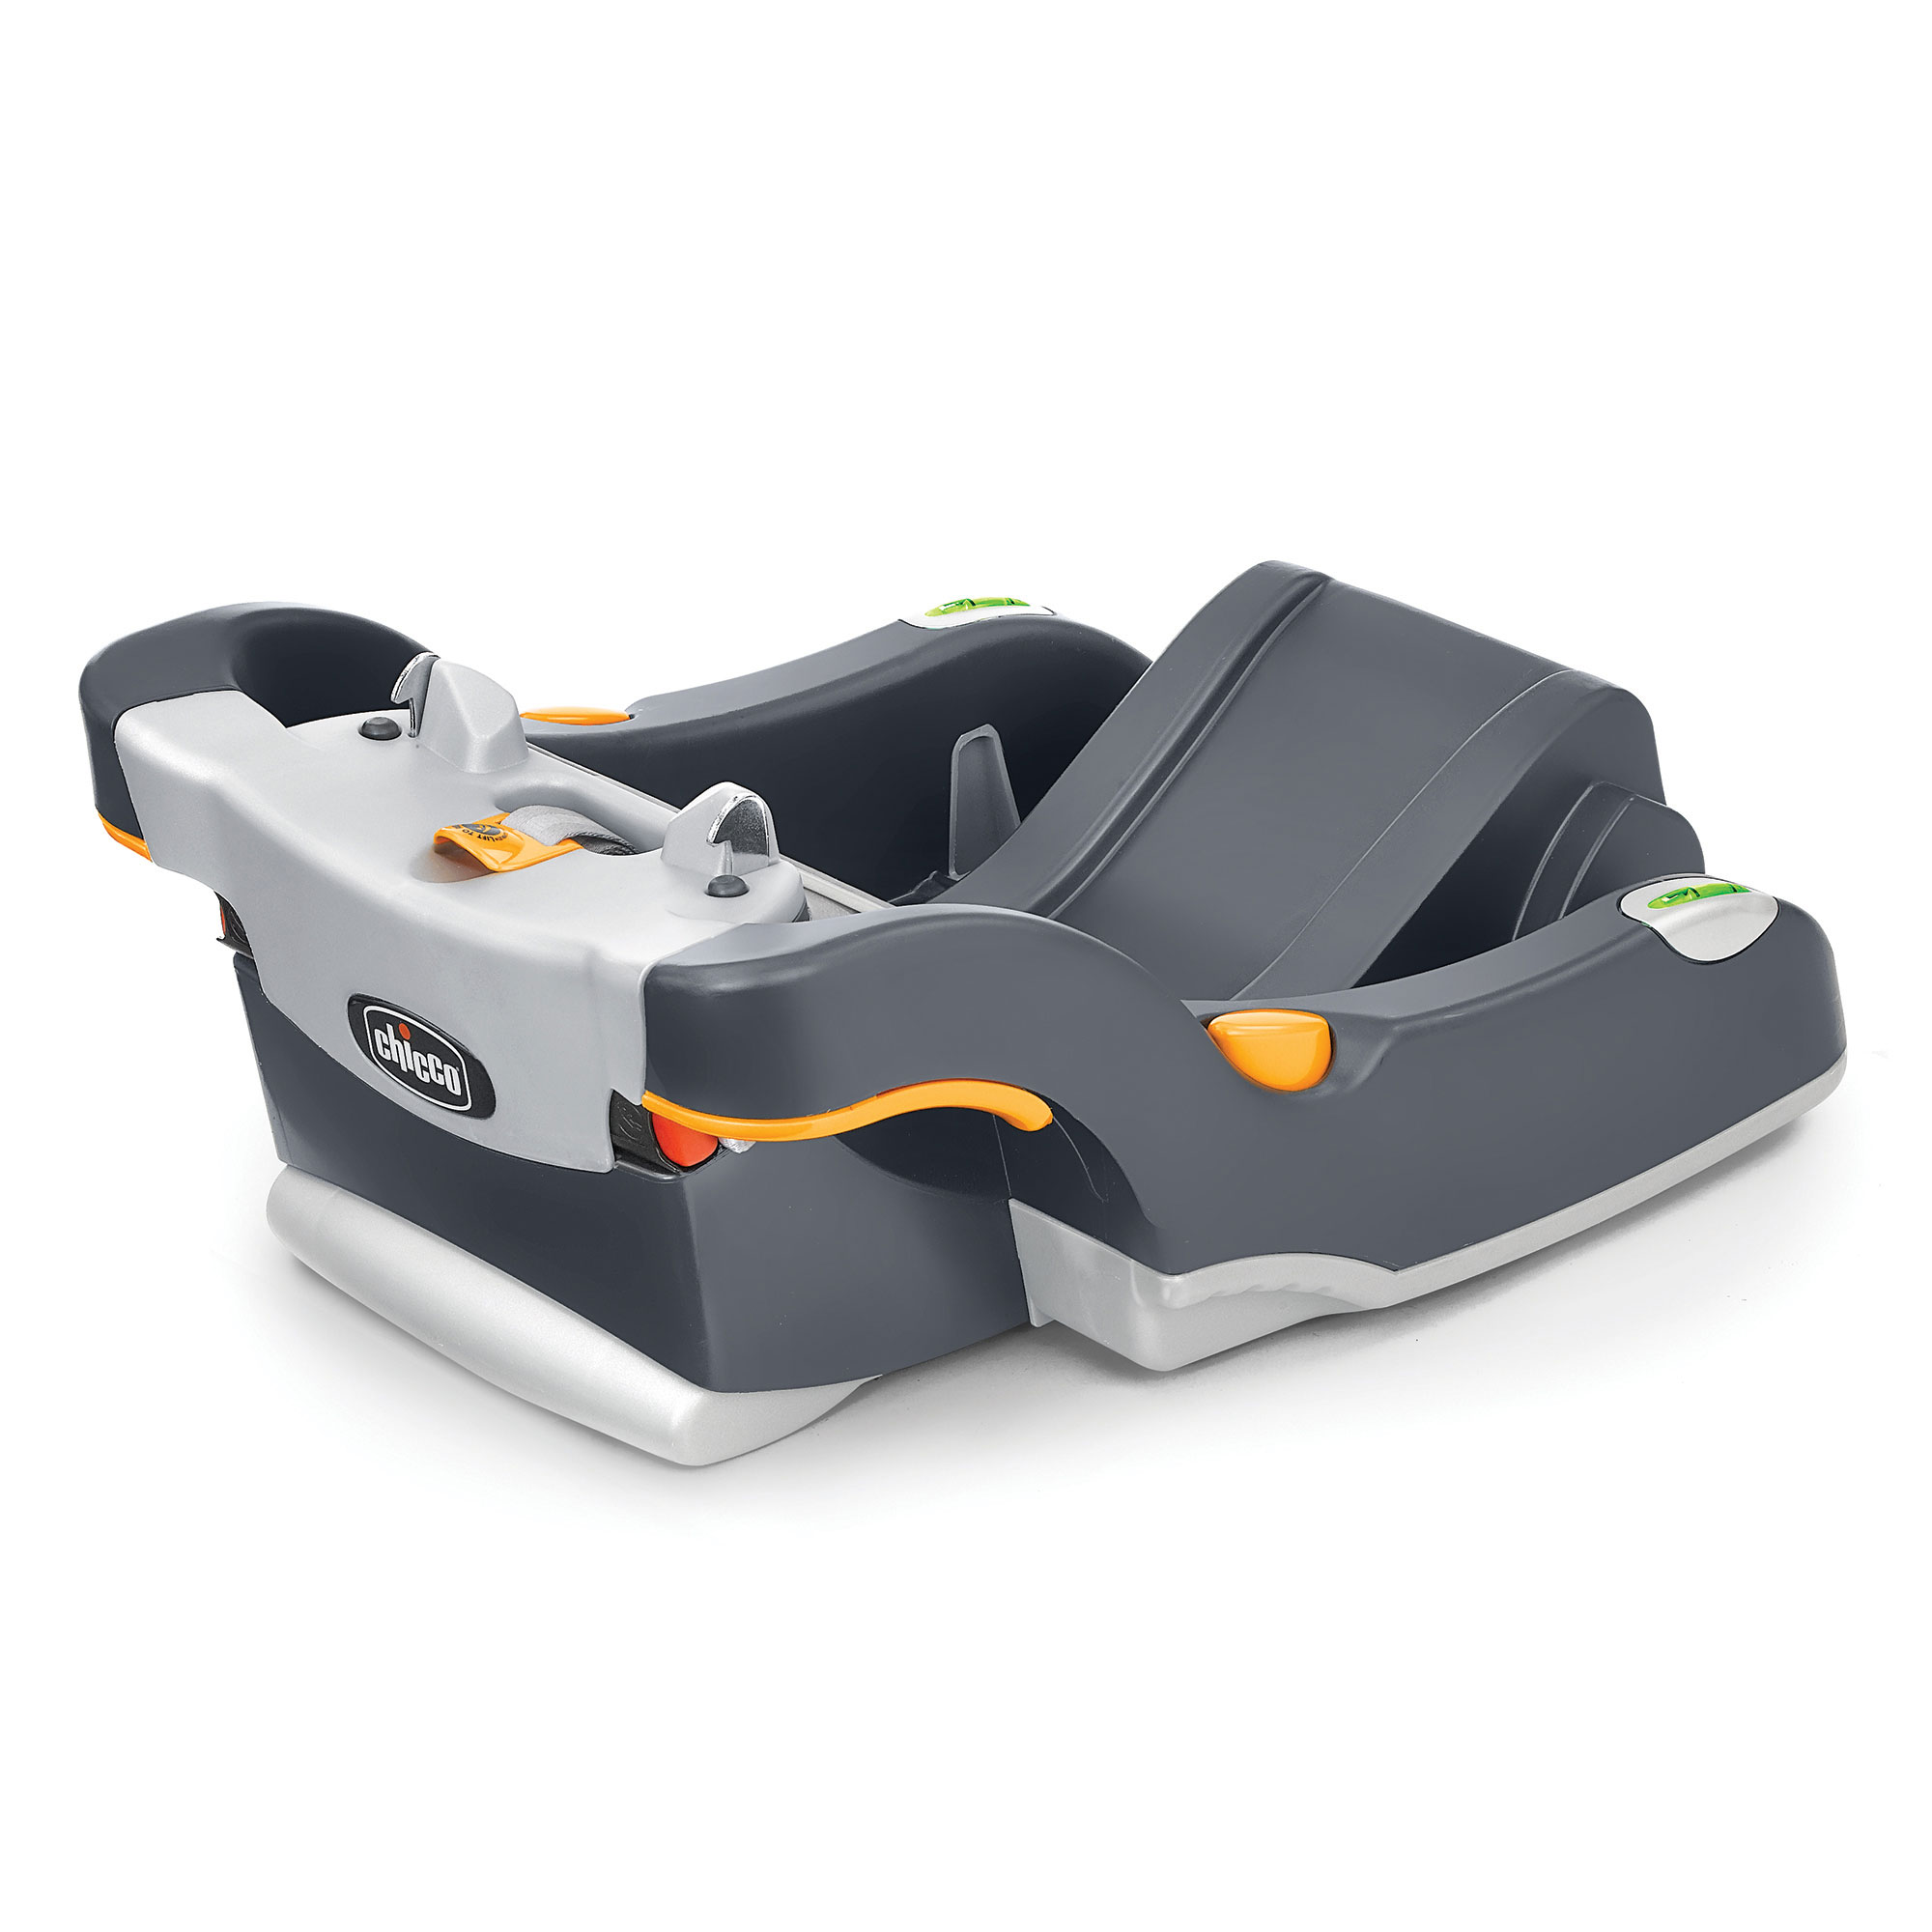 KeyFit Infant Car Seat Base in